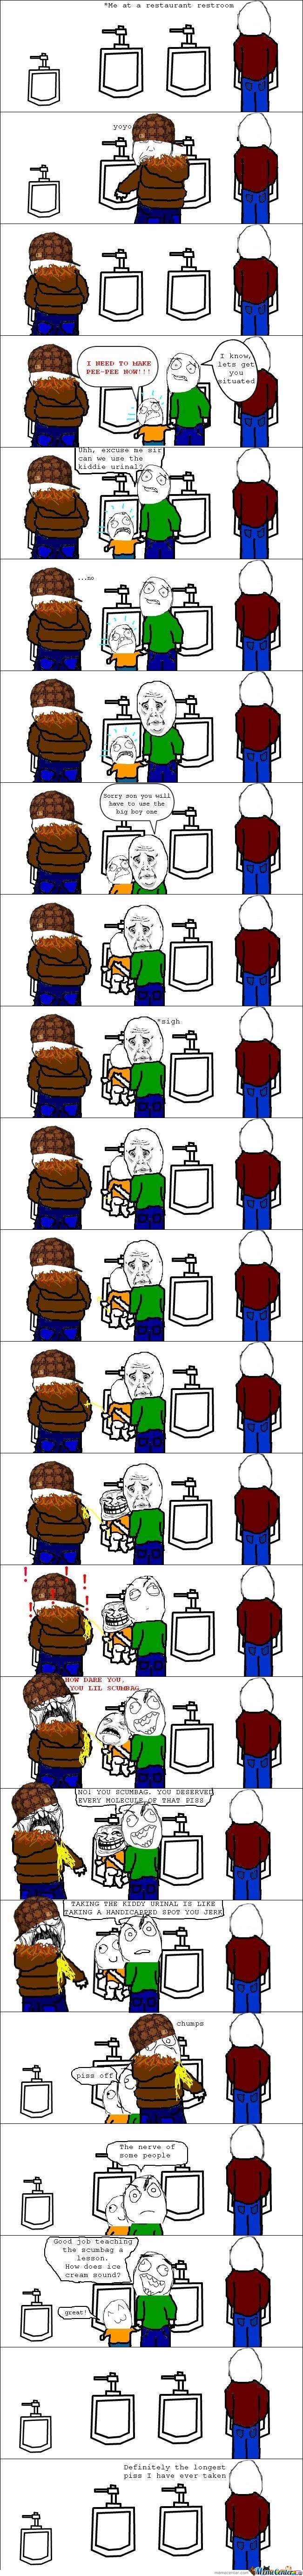 My Life In The Bathroom